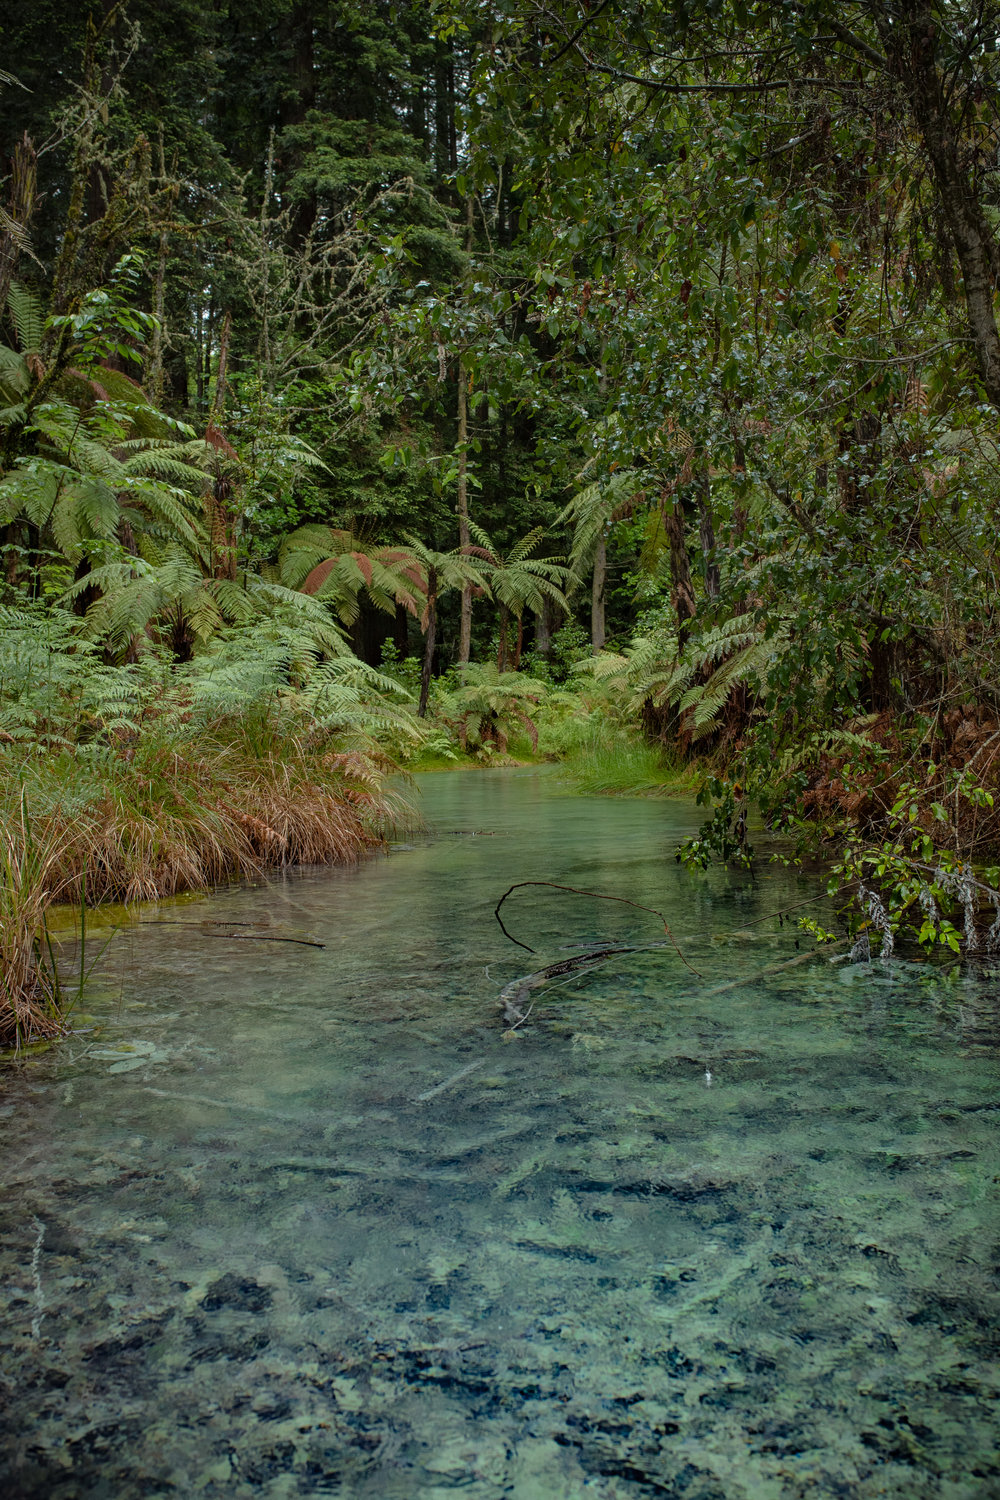 The sulfur springs are not just surrounded by the mighty redwoods - tree ferns and twiners are contributing to a jungle-like feelling.